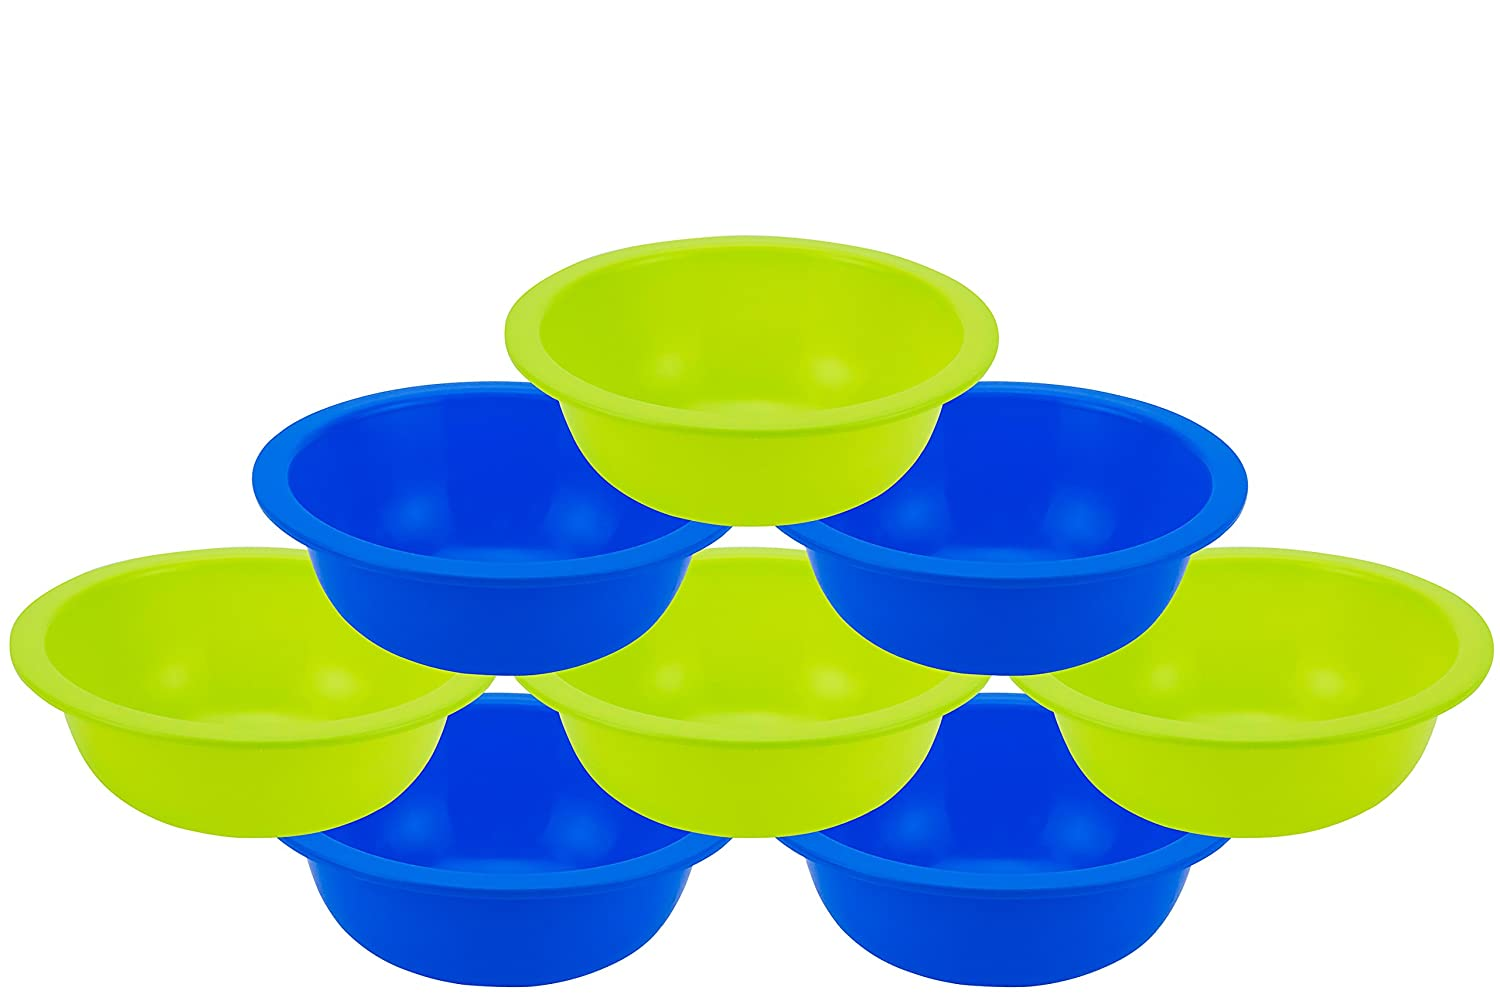 Small Serving and Mixing Bowls Fruit Blue 28 oz Set of 4 Soup Bowl for Salad Snack DecorRack Set of 4 Cereal Bowls BPA Free Plastic Dessert Shatter Proof and Unbreakable